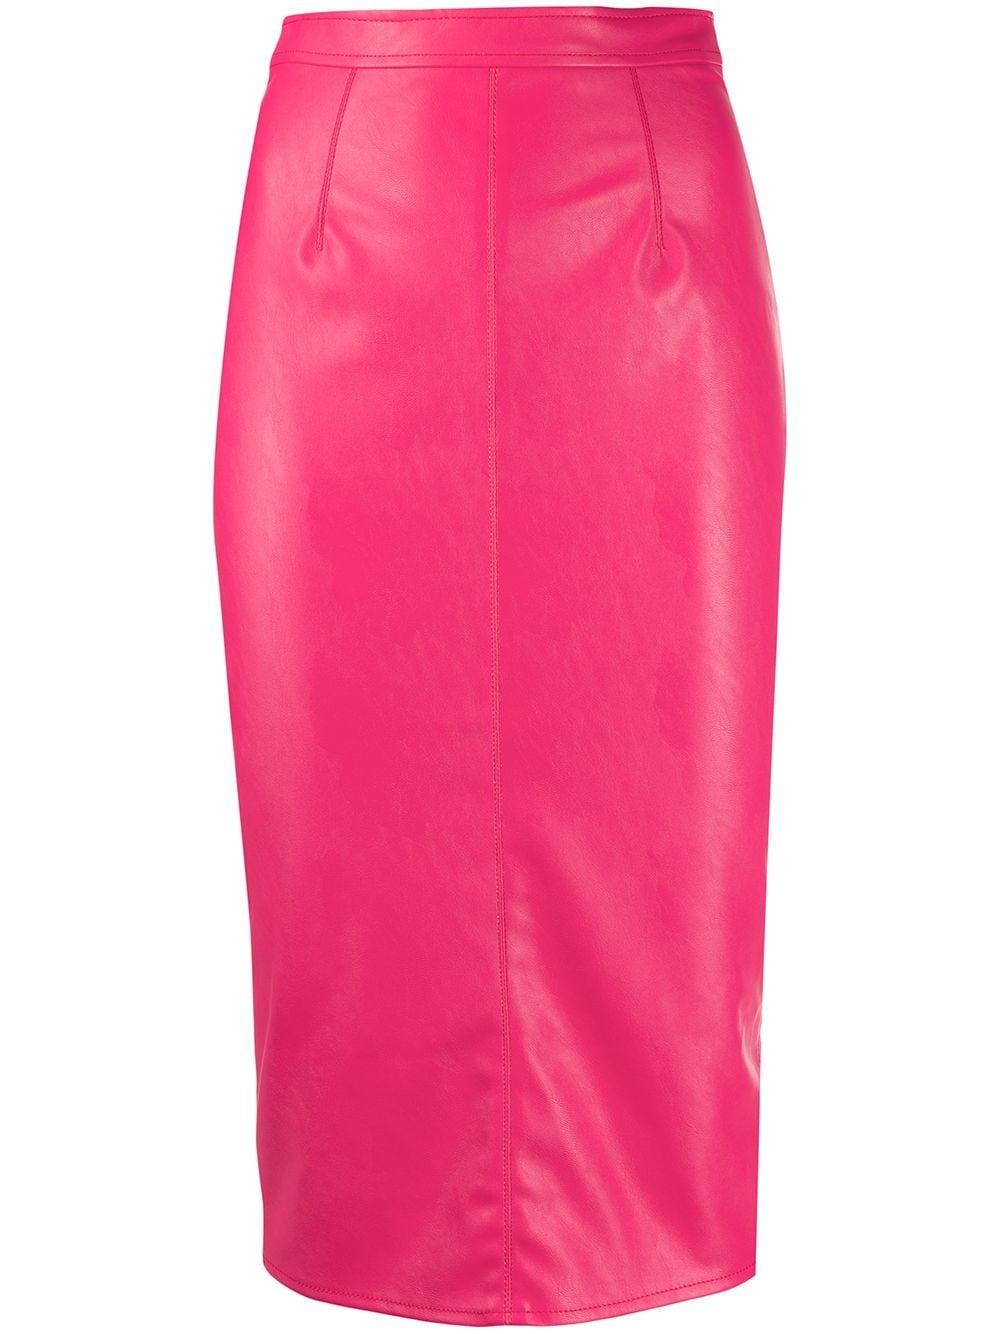 Elisabetta Franchi fitted pencil skirt